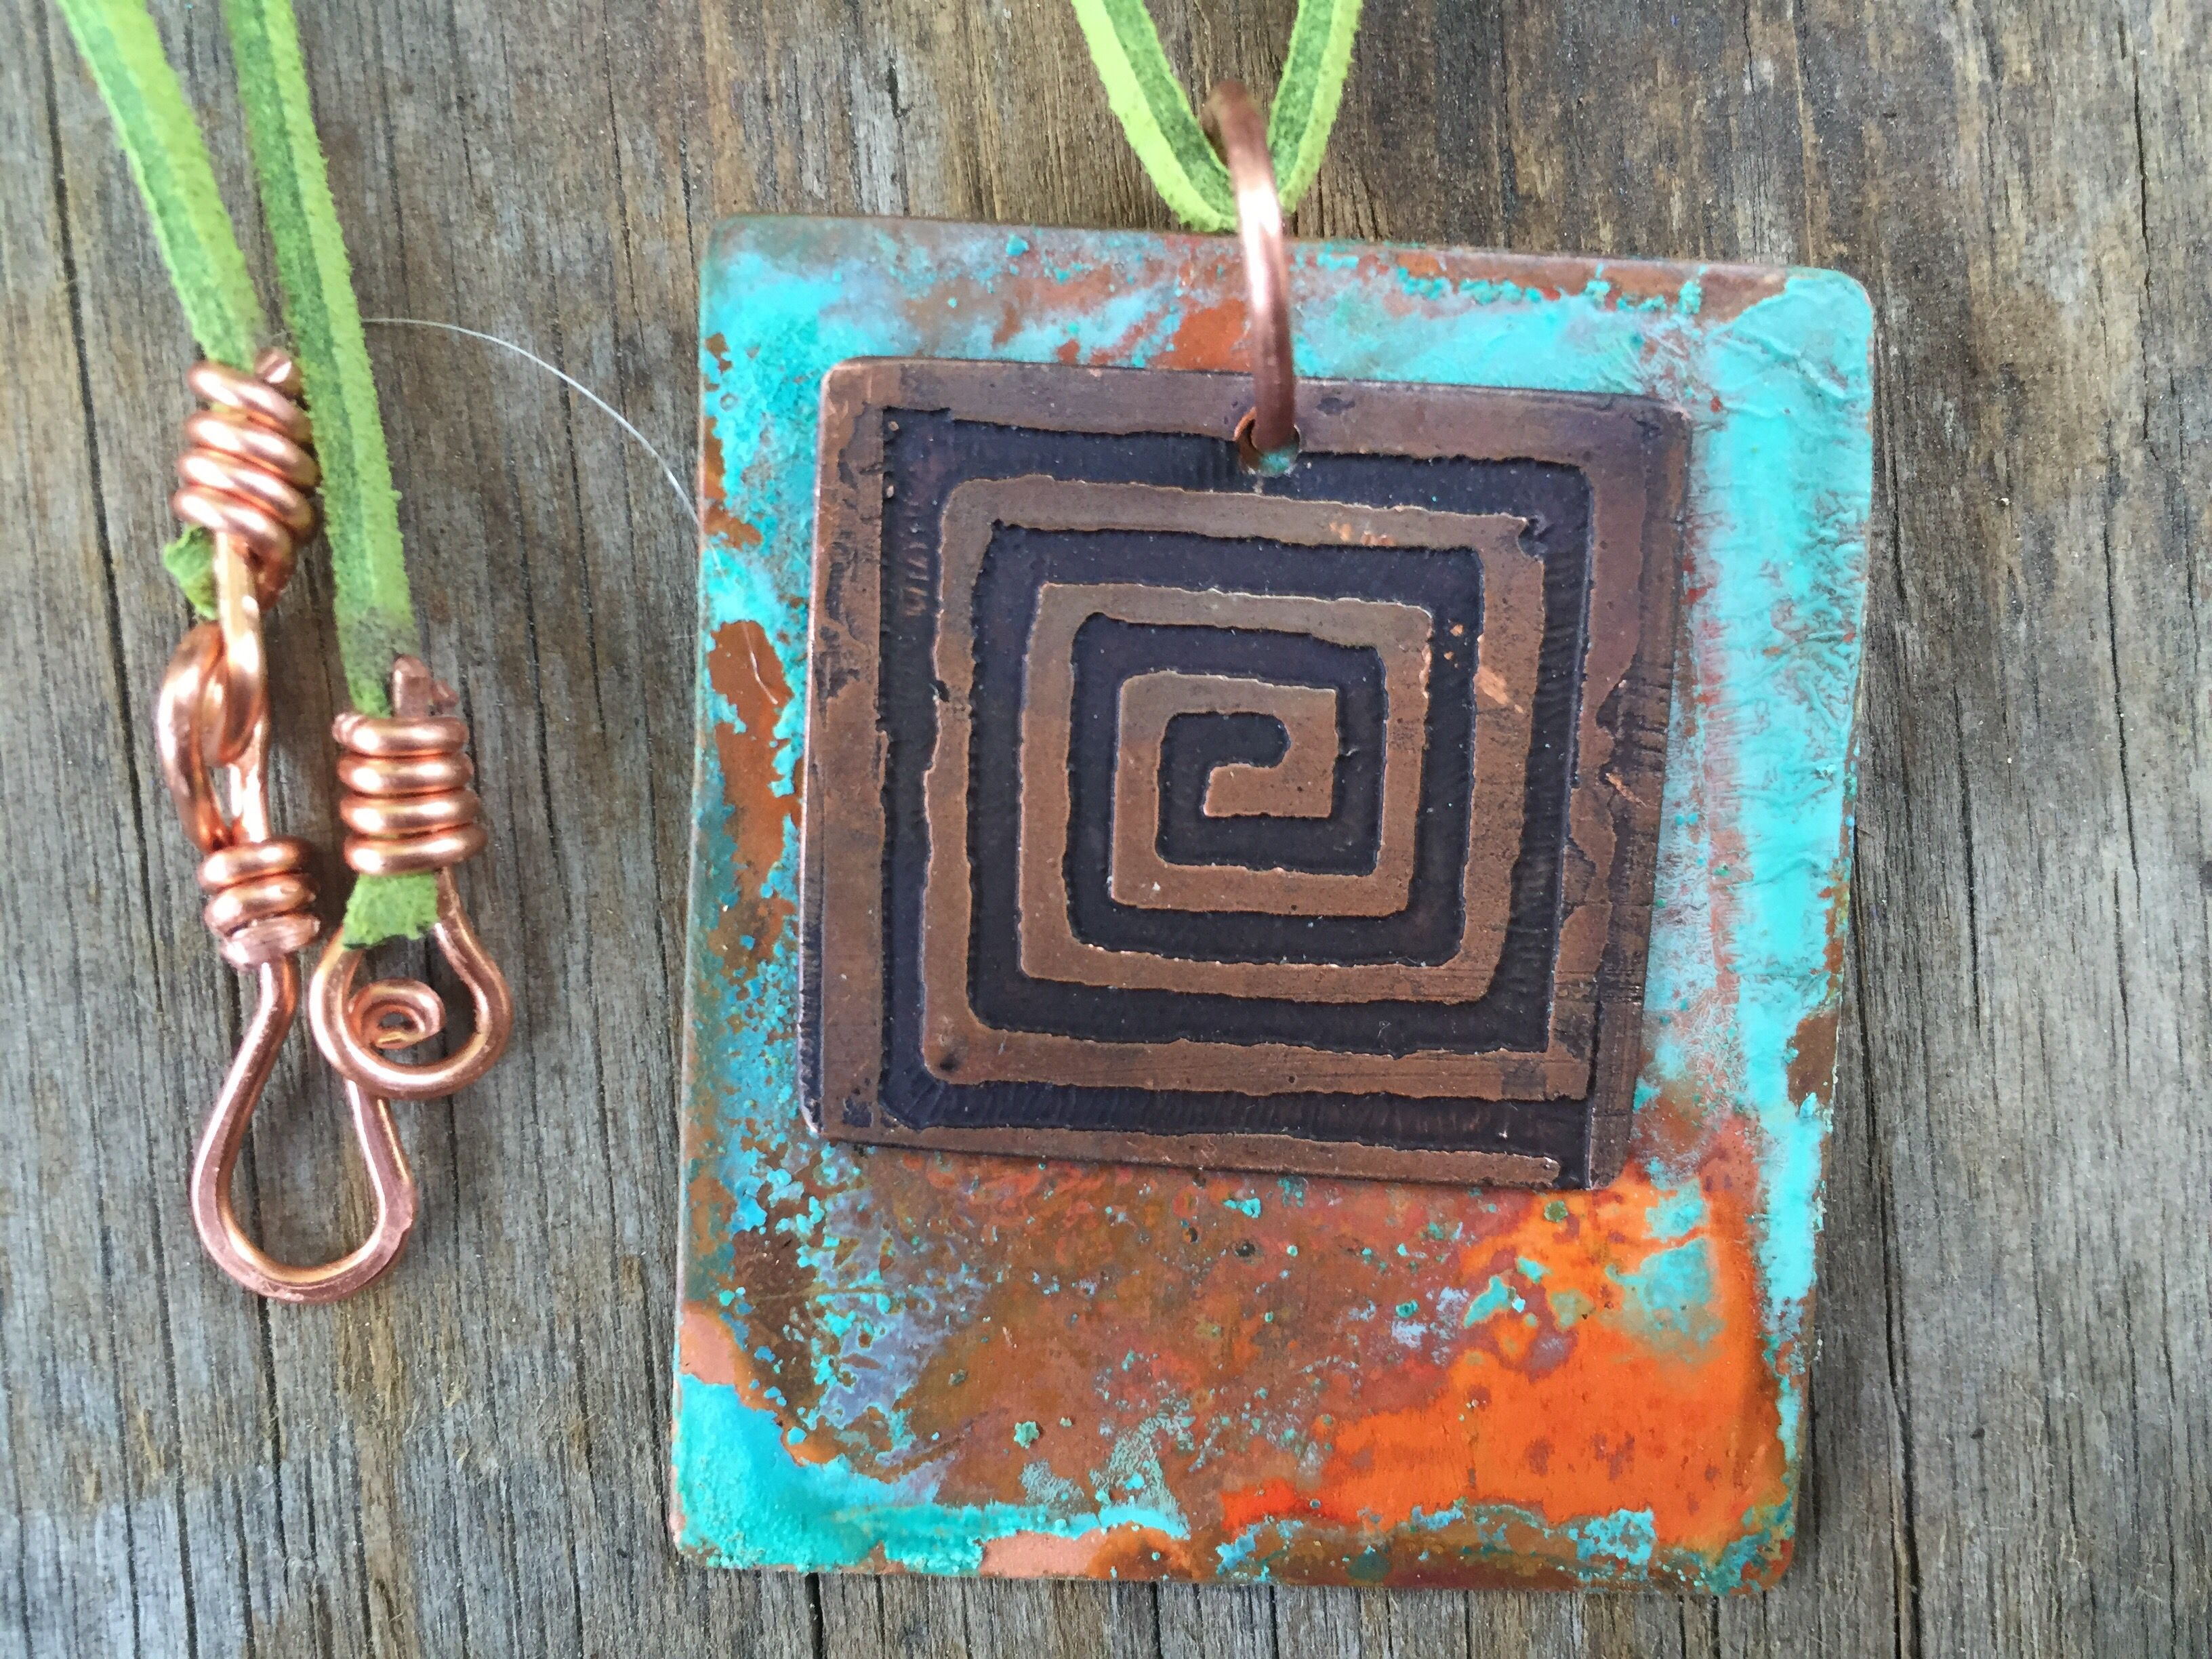 Etched and patina copper pendant. Patina is vinegar and